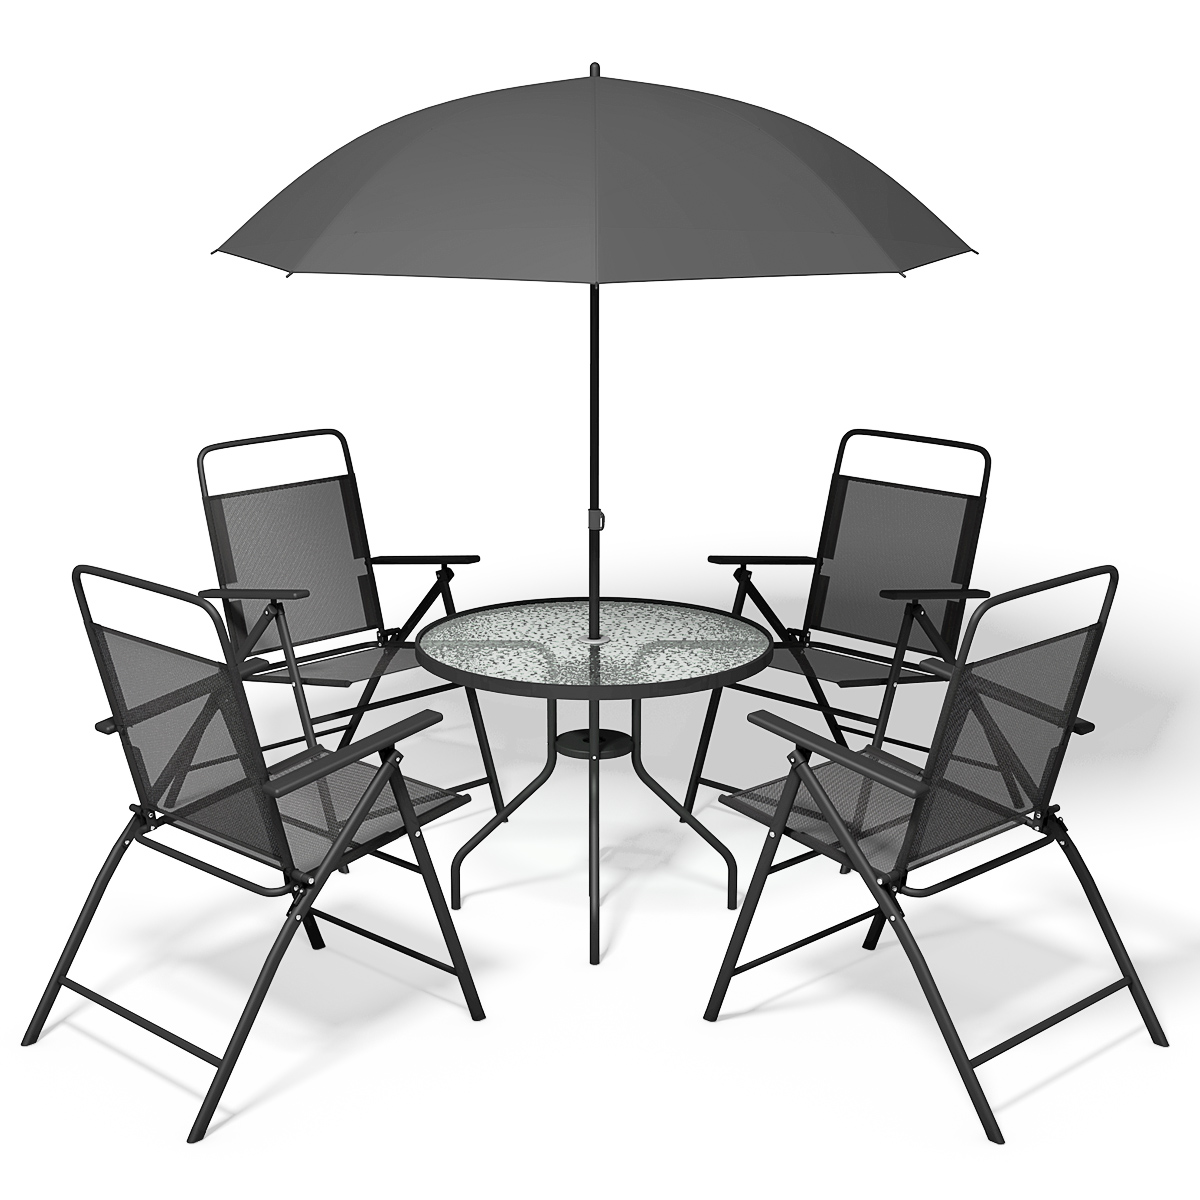 table 4 folding chairs gray